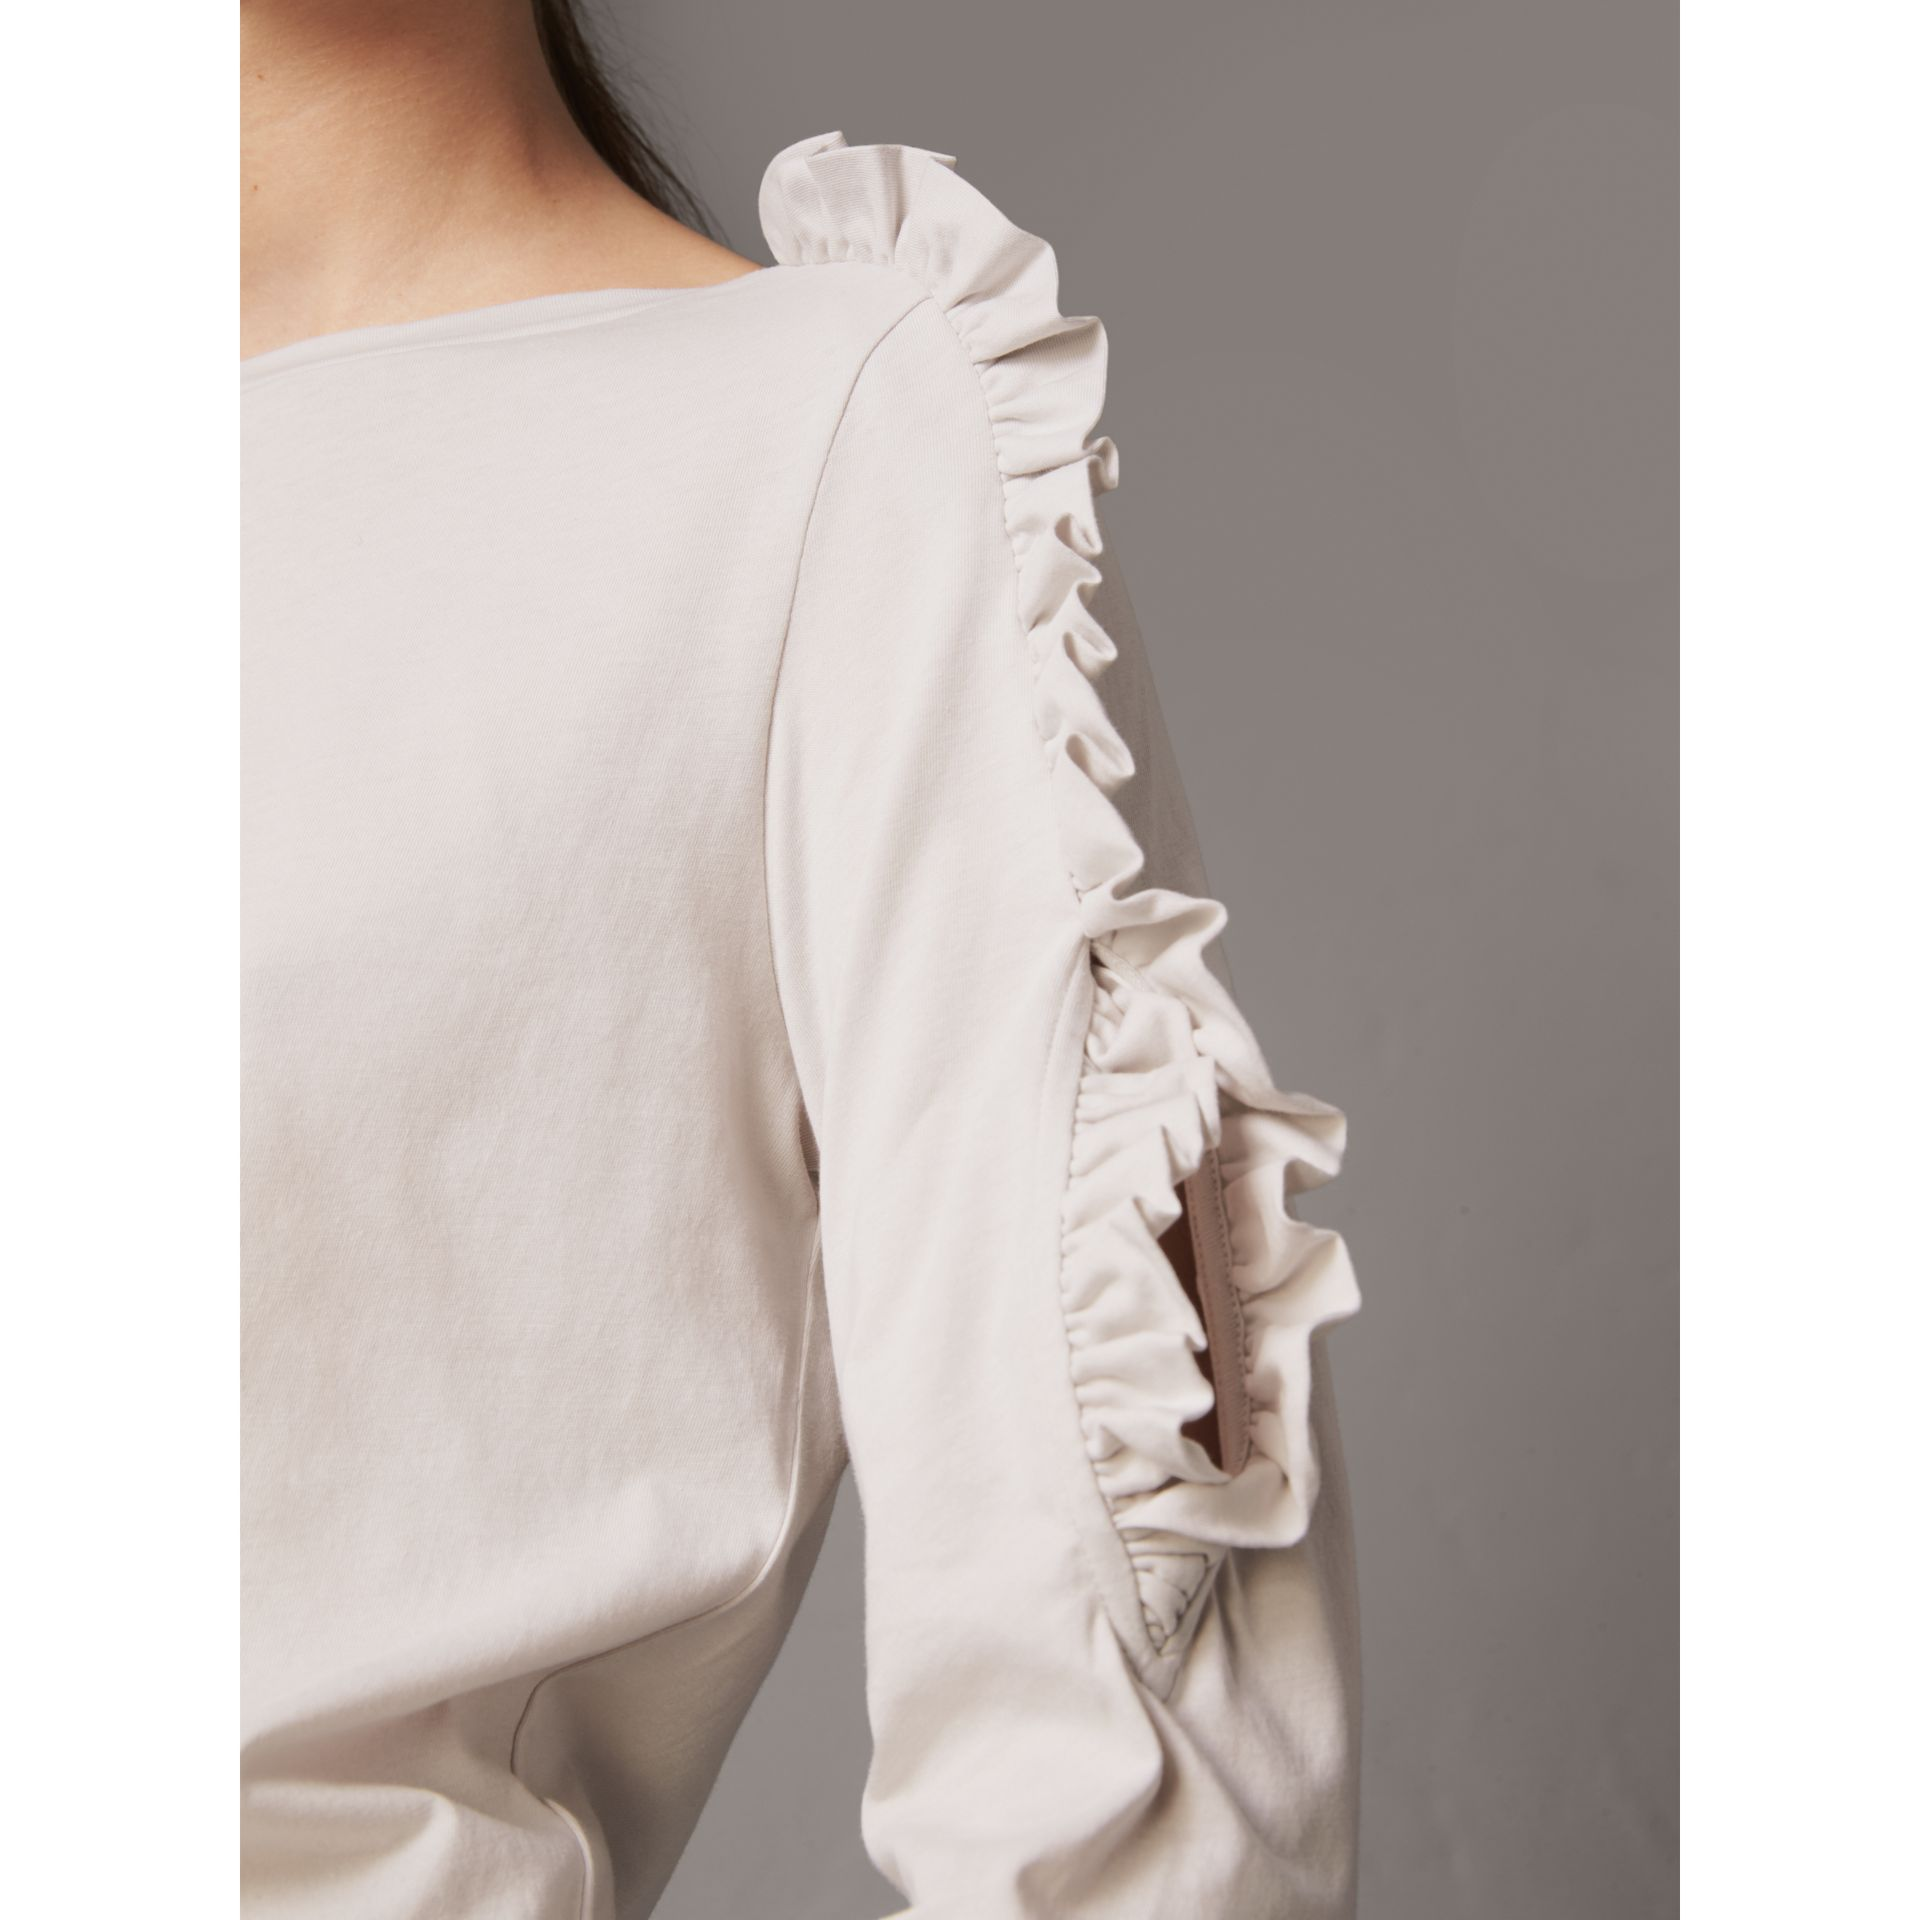 Ruffle Detail Cotton Top in Winter White - Women | Burberry - gallery image 1